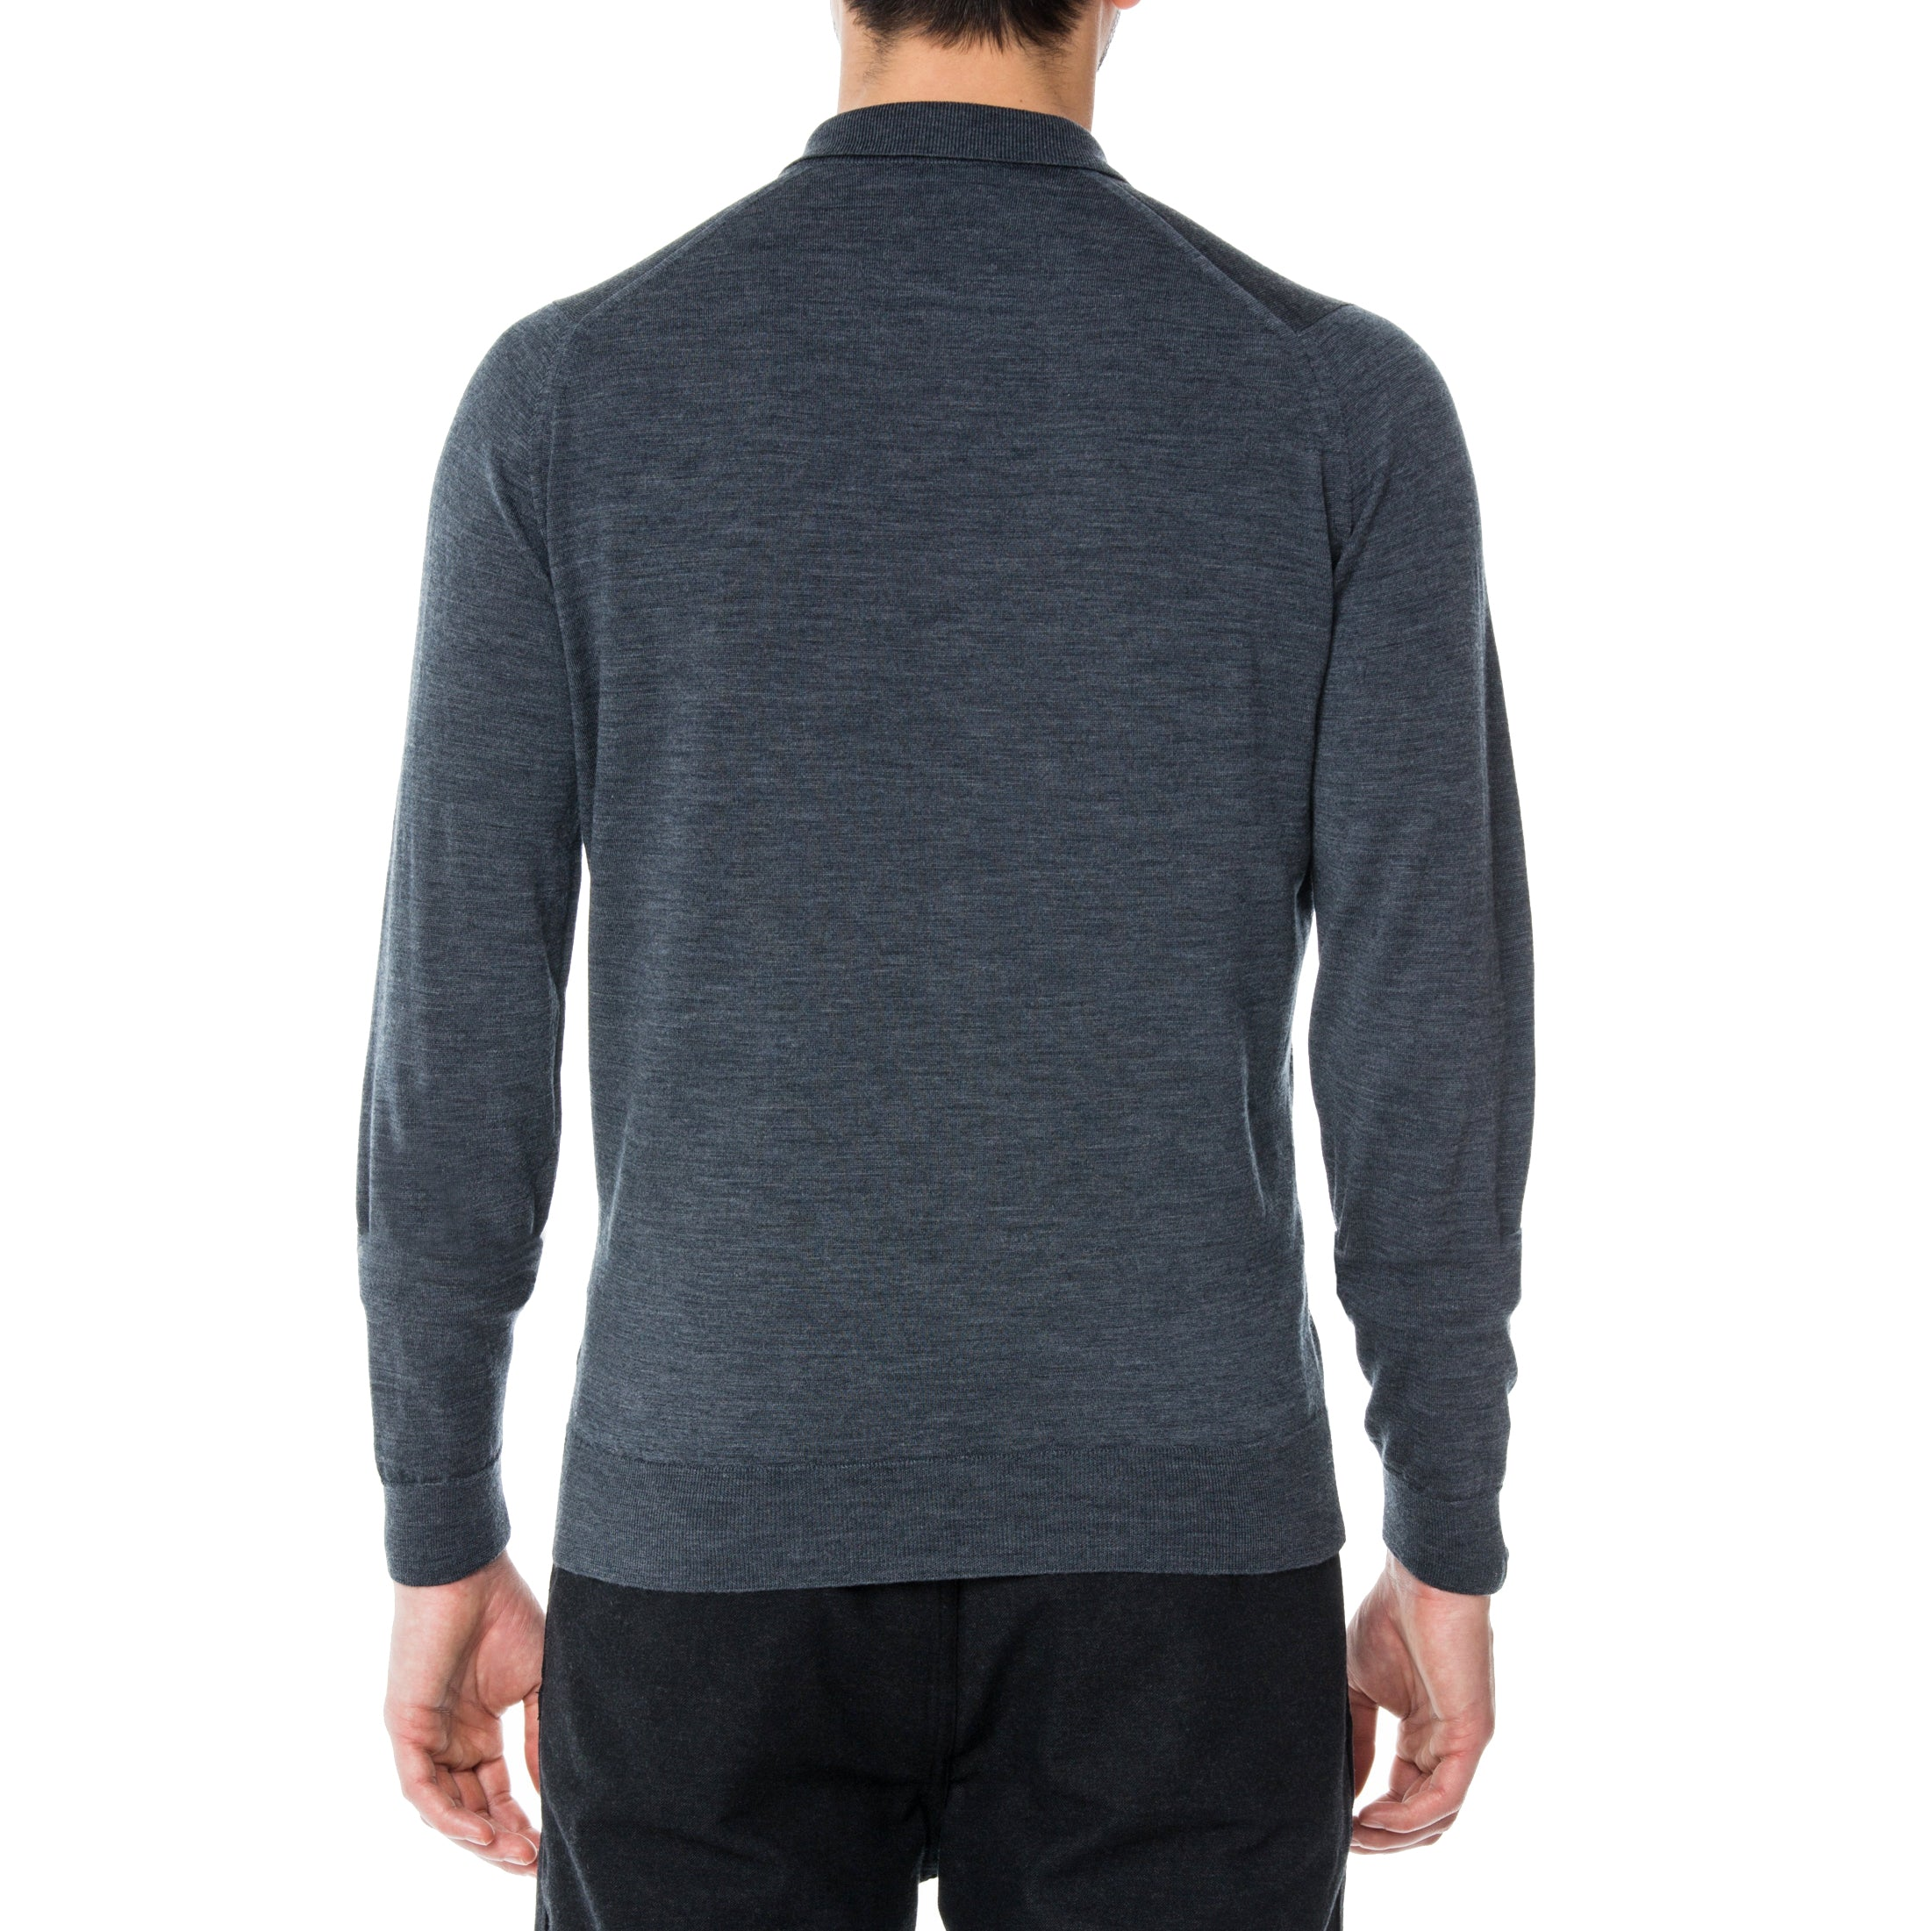 Charcoal Merino L/S Knit Polo Sweater